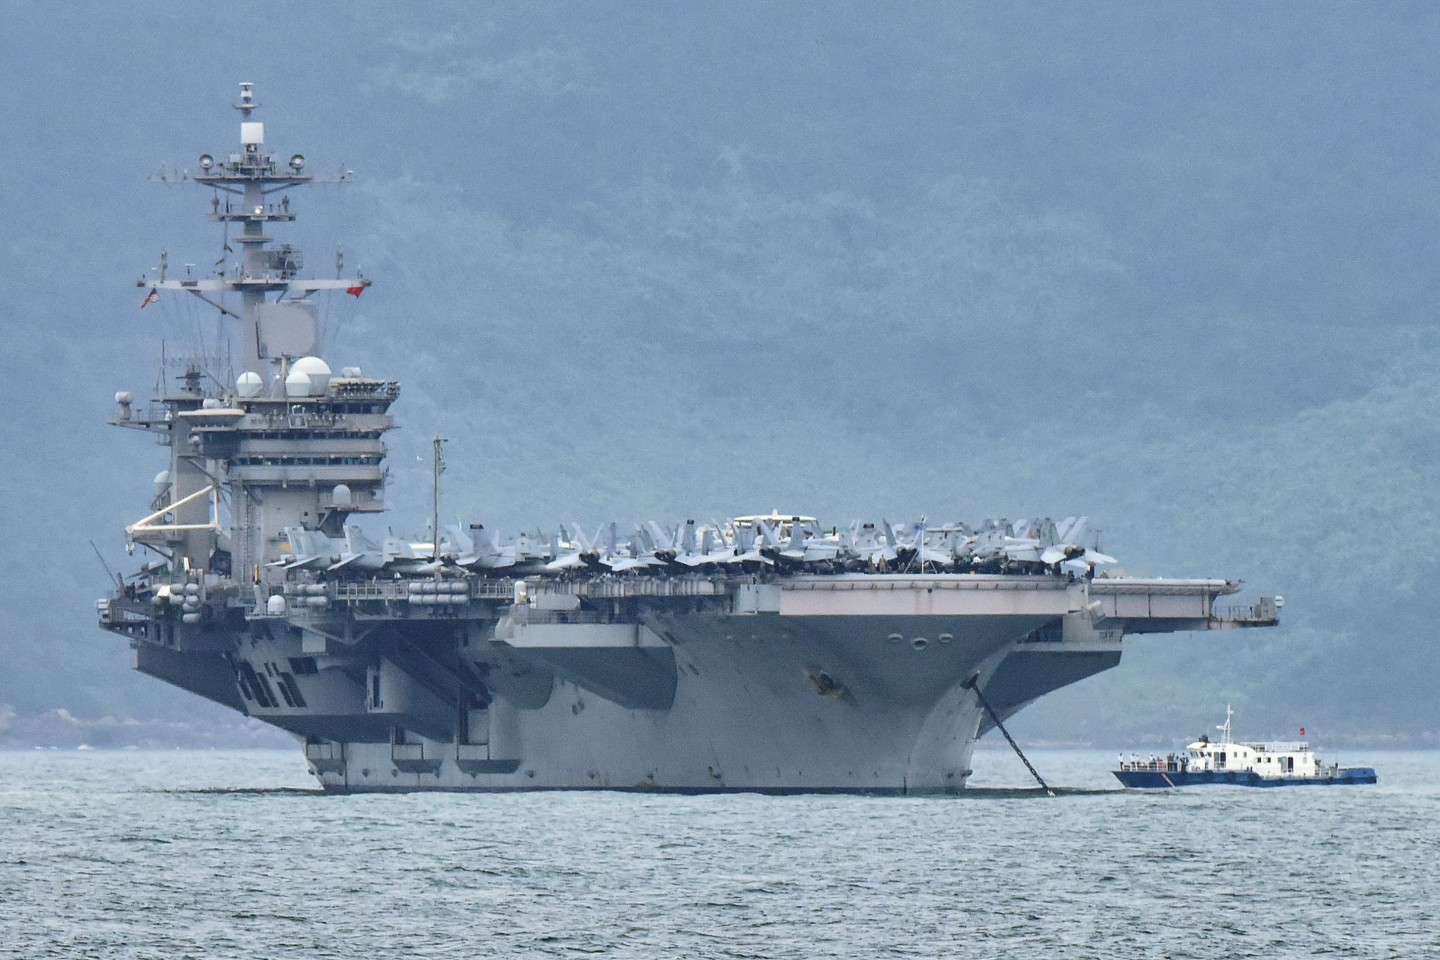 The USS Theodore Roosevelt (CVN-71) is pictured as it enters the port in Da Nang, Vietnam, on 5 March 2020. (Kham/Reuters)